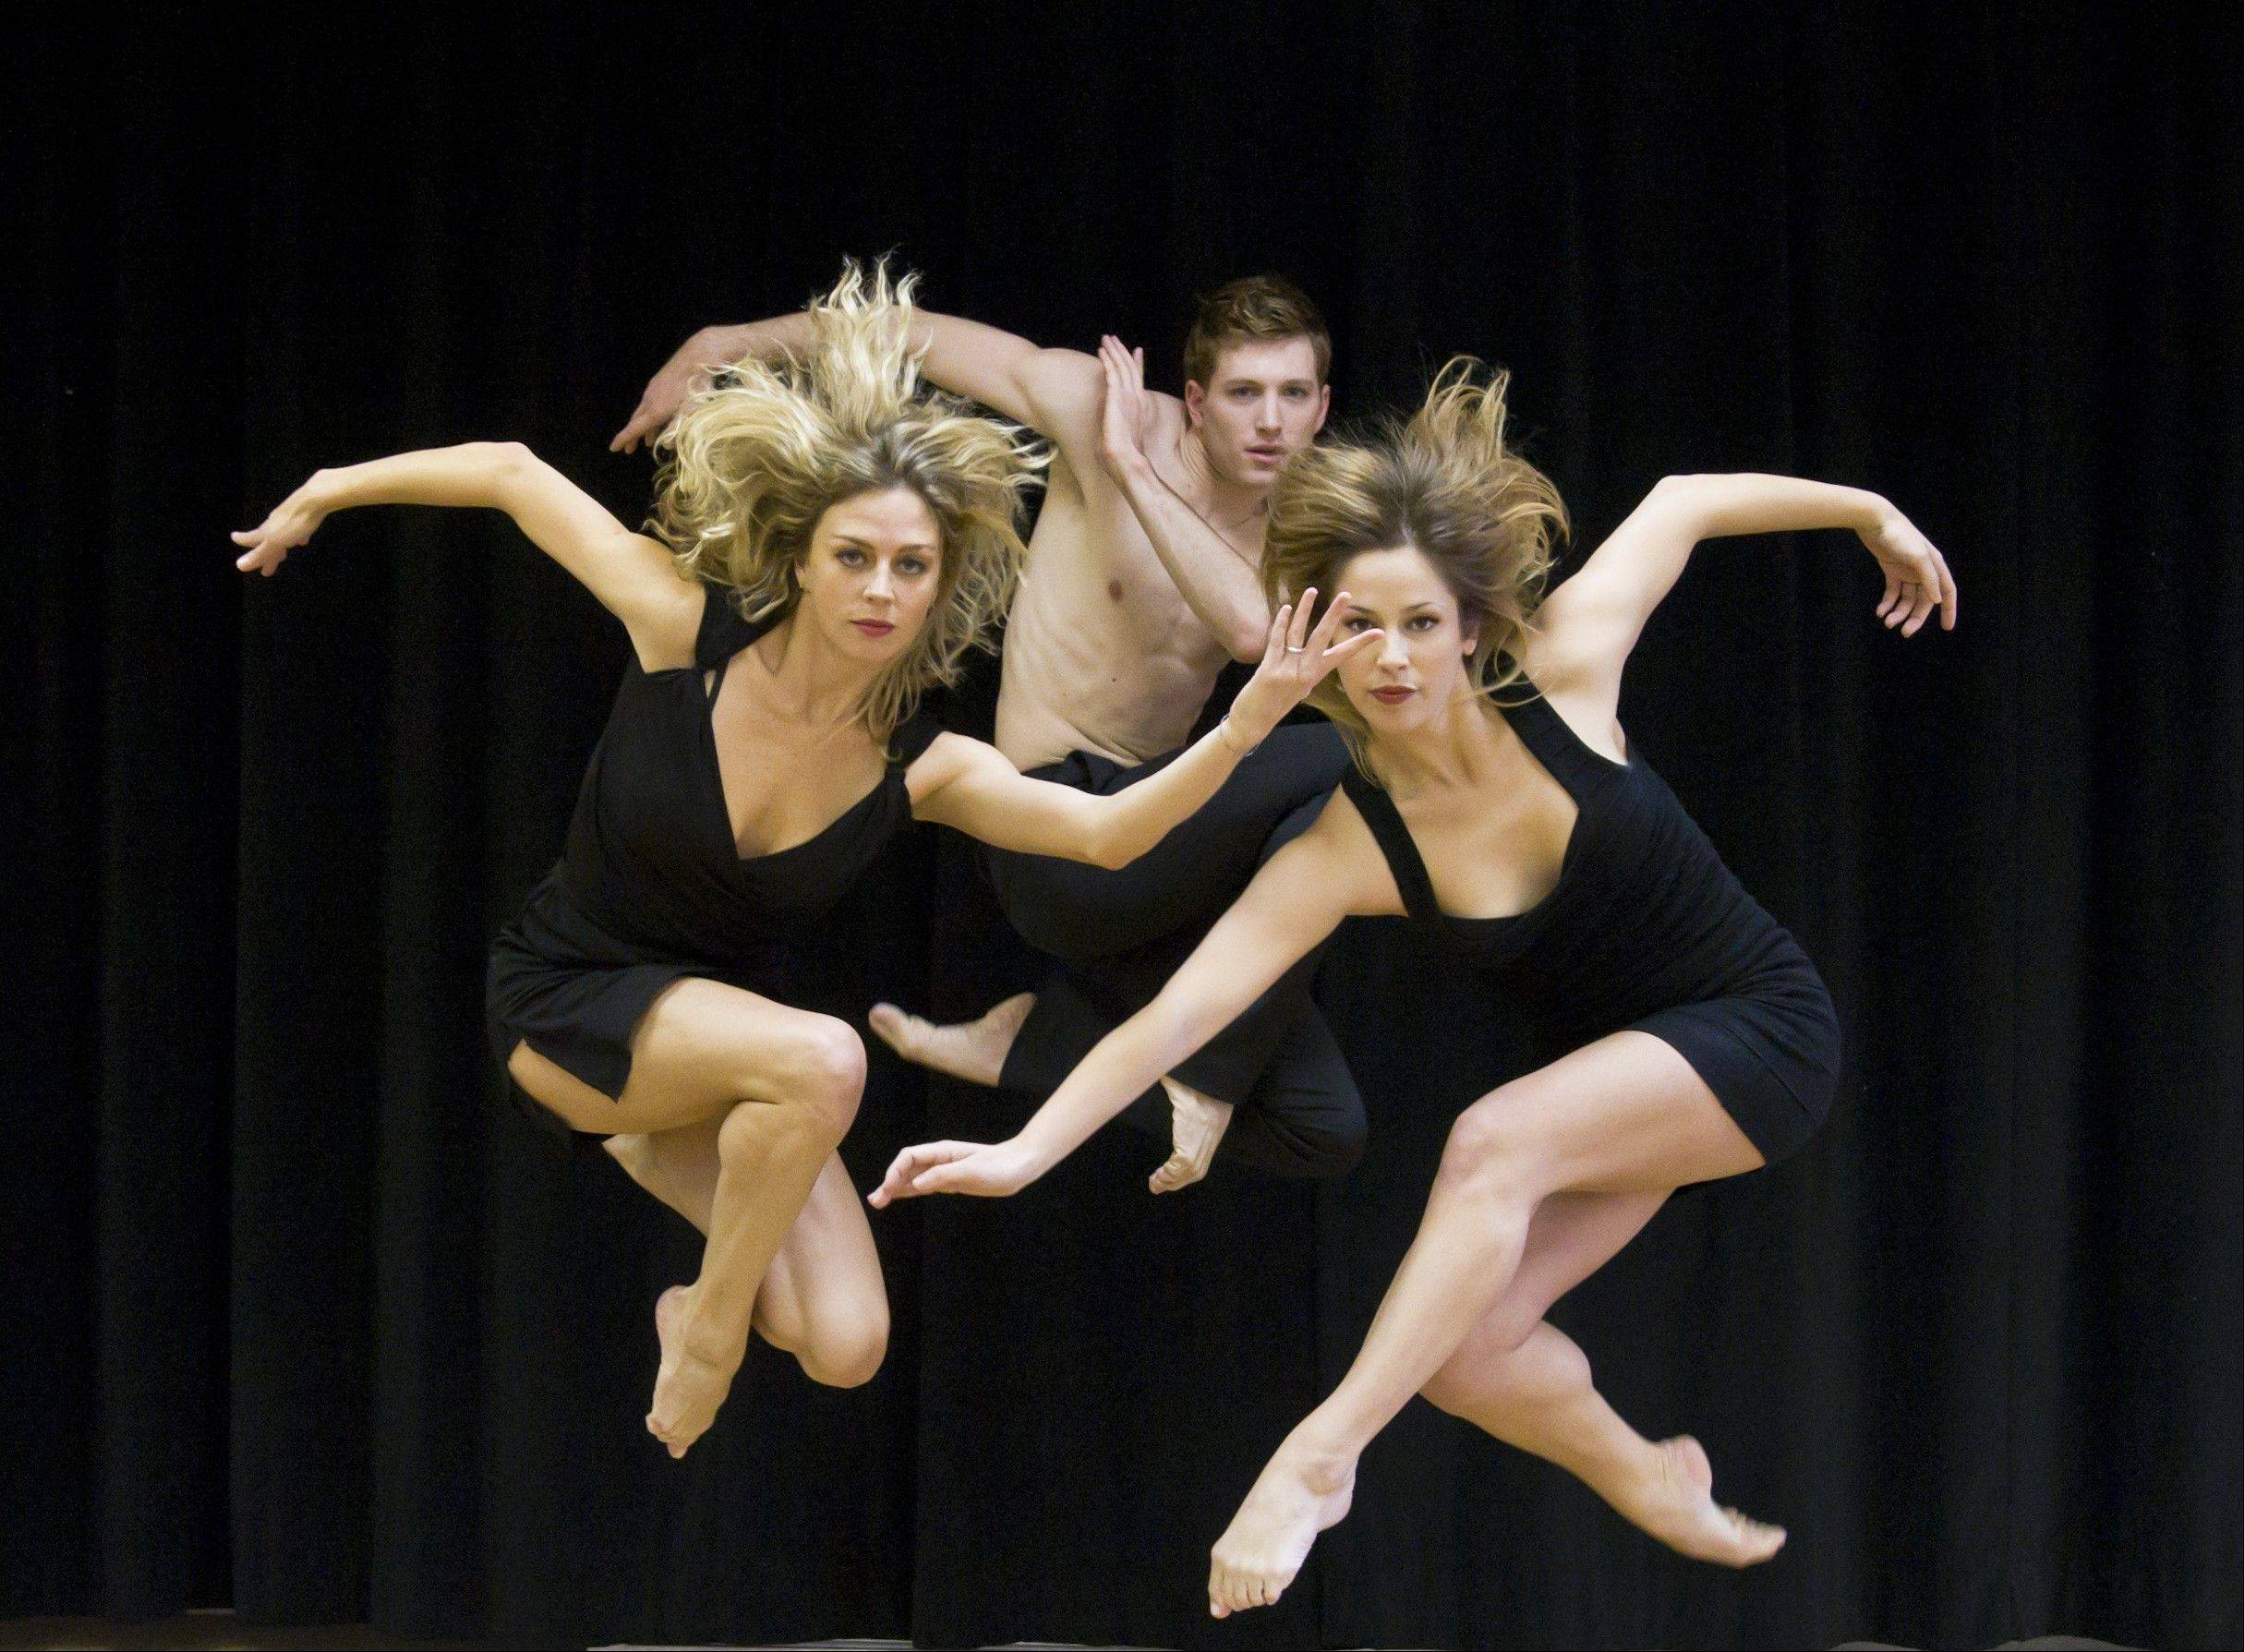 The modern dance troupe Parsons Dance performs at College of DuPage's McAninch Arts Center in Glen Ellyn on Saturday, April 21.